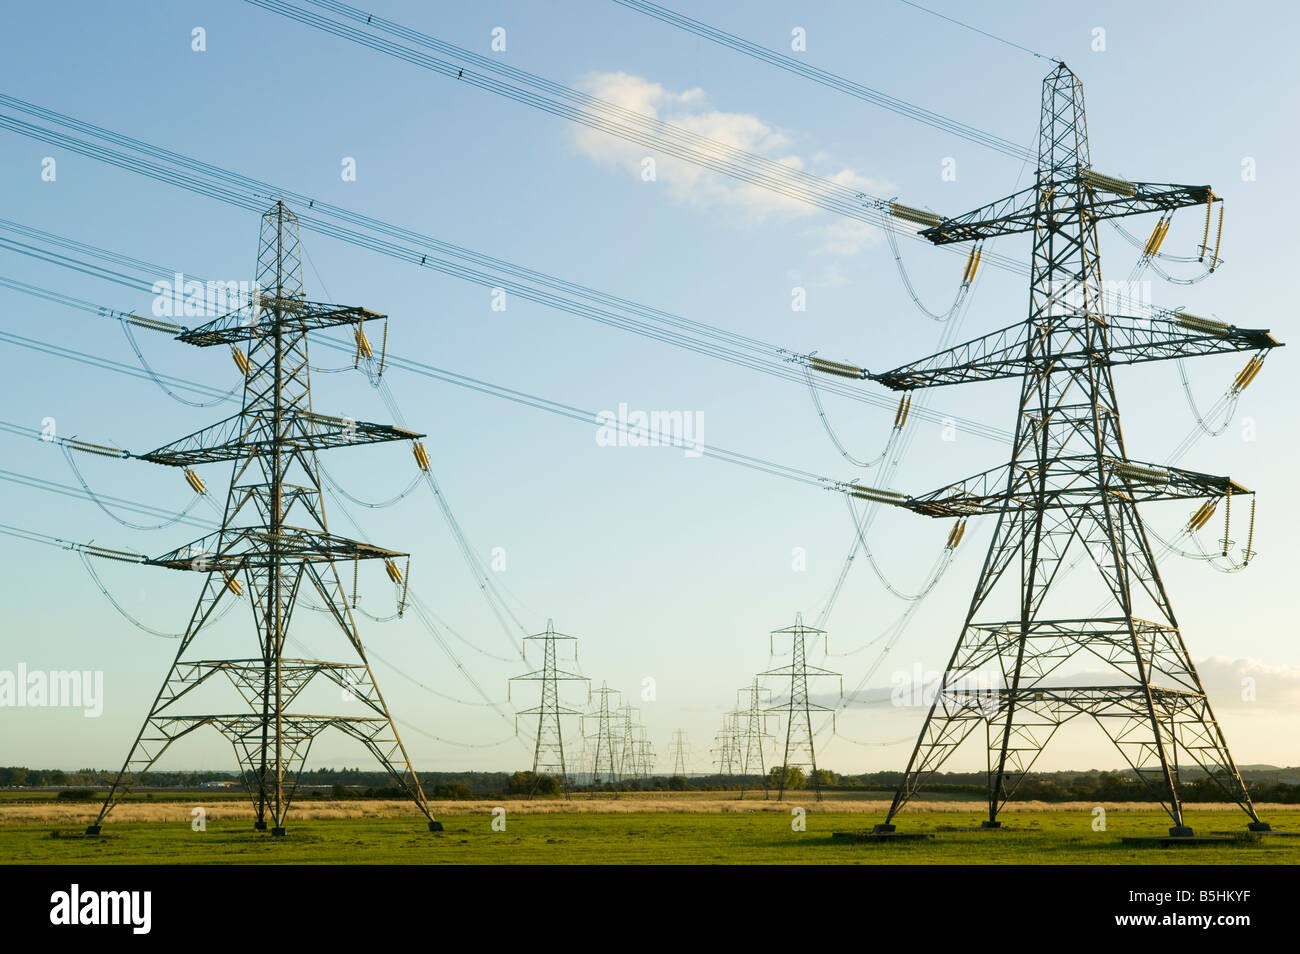 Electricity pylons Scotland UK - Stock Image